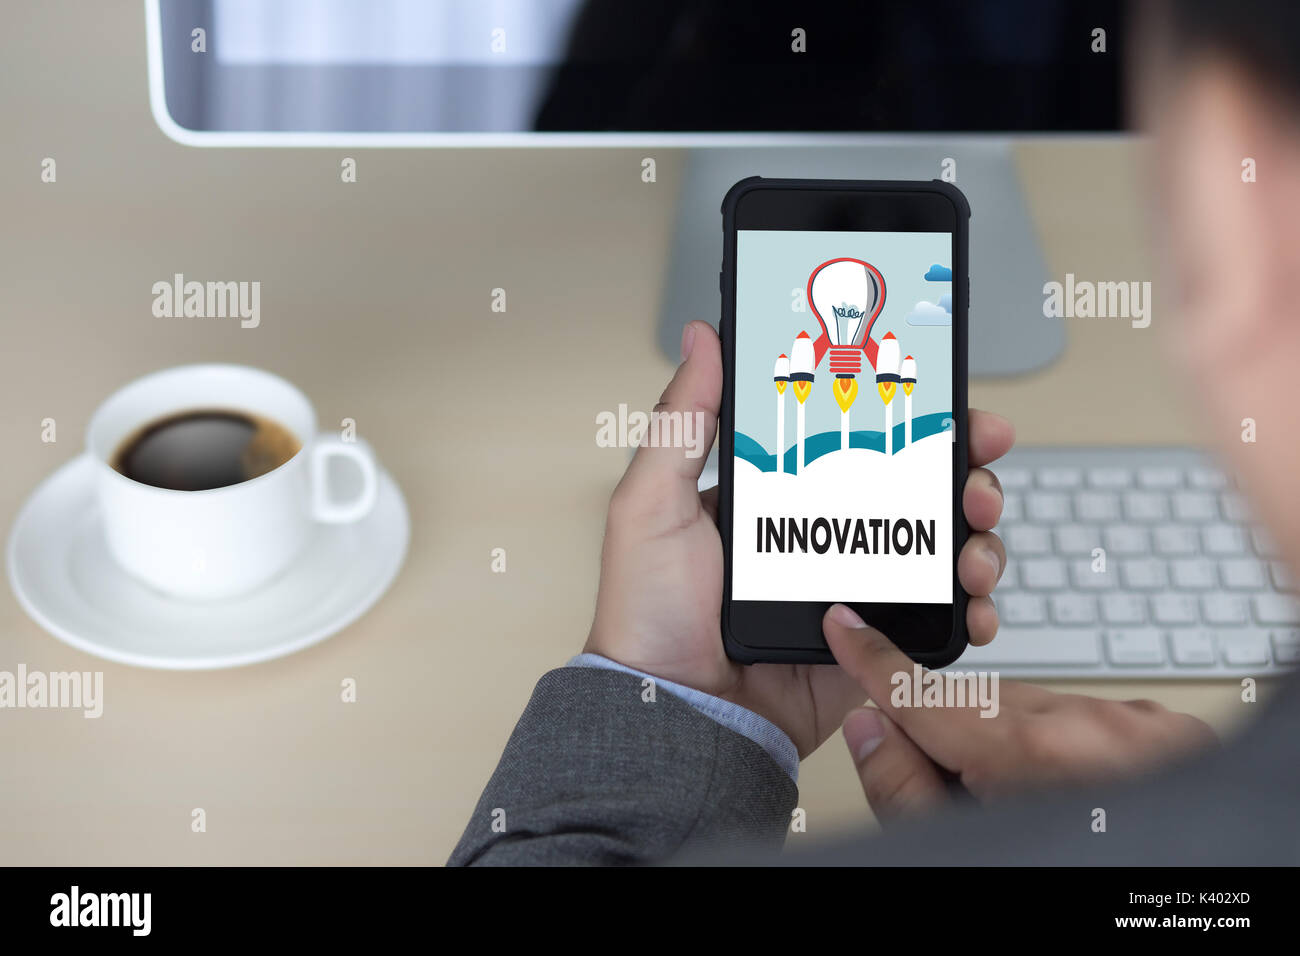 INNOVATION think creative ideas Invent Knowledge Creative process - Stock Image